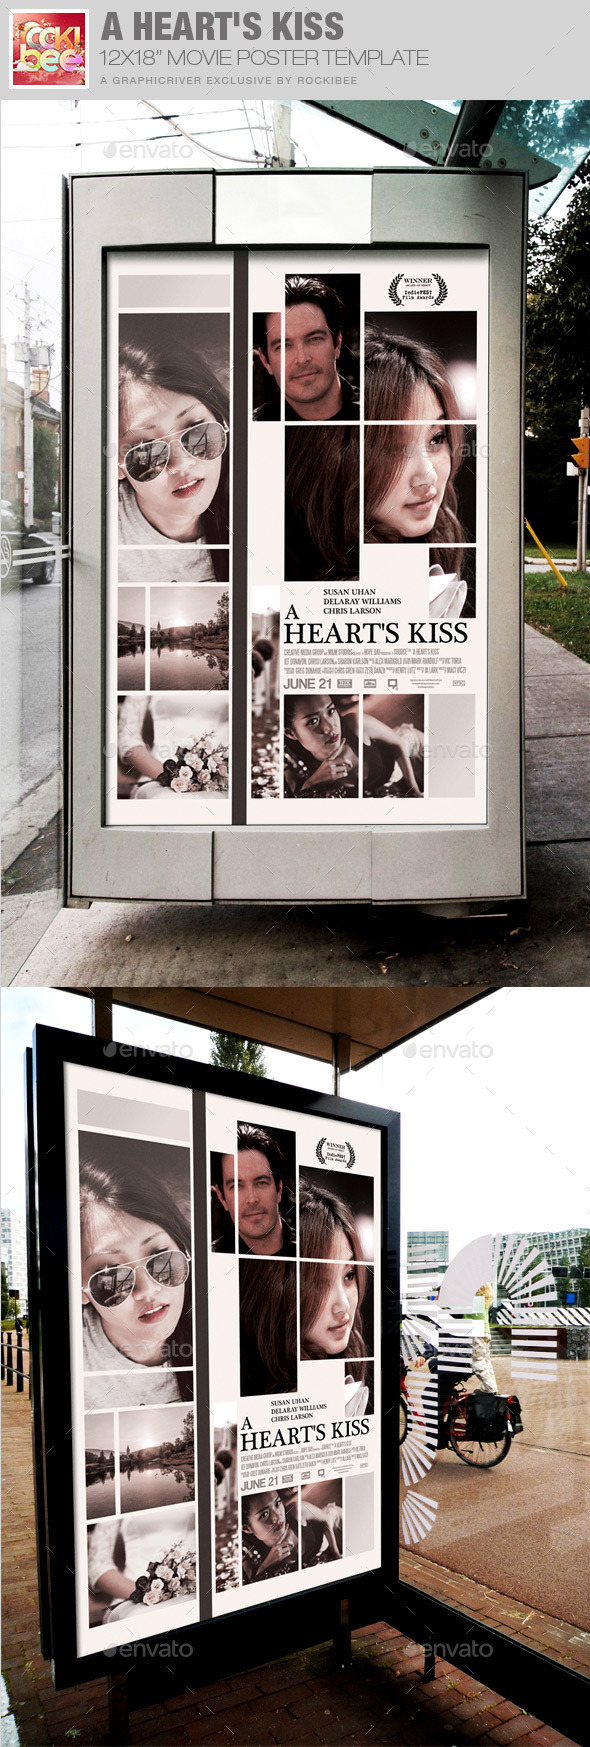 A Heart's Kiss Movie Poster Template